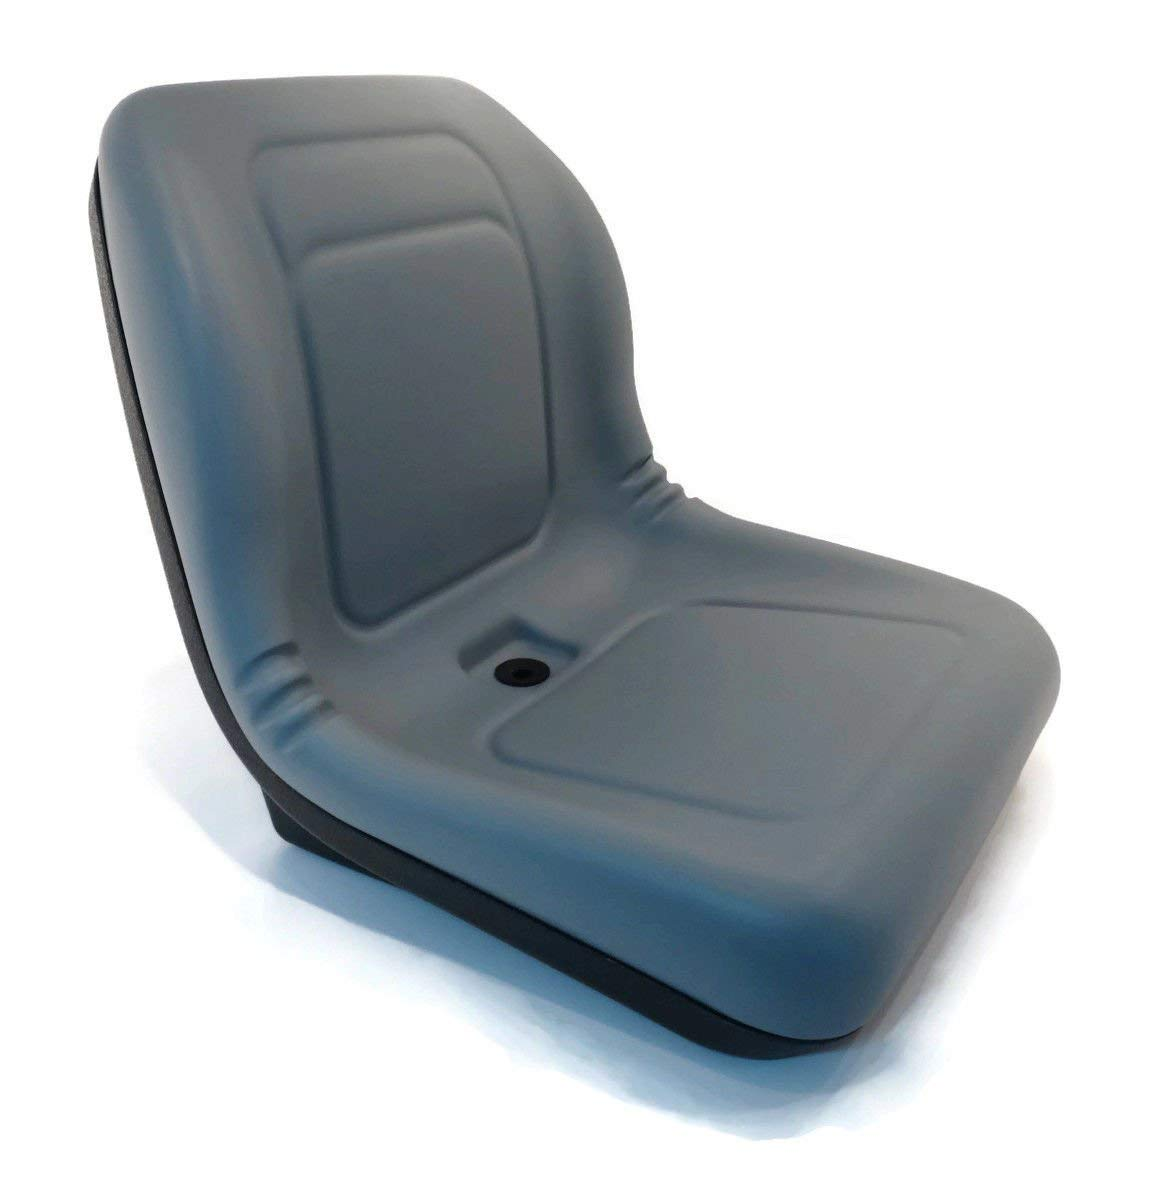 New Grey HIGH BACK SEAT for John Deere VG11696 VG12160 VGA10177 XB180 XB-180 ,,#id(theropshop; TRYK110271871626567